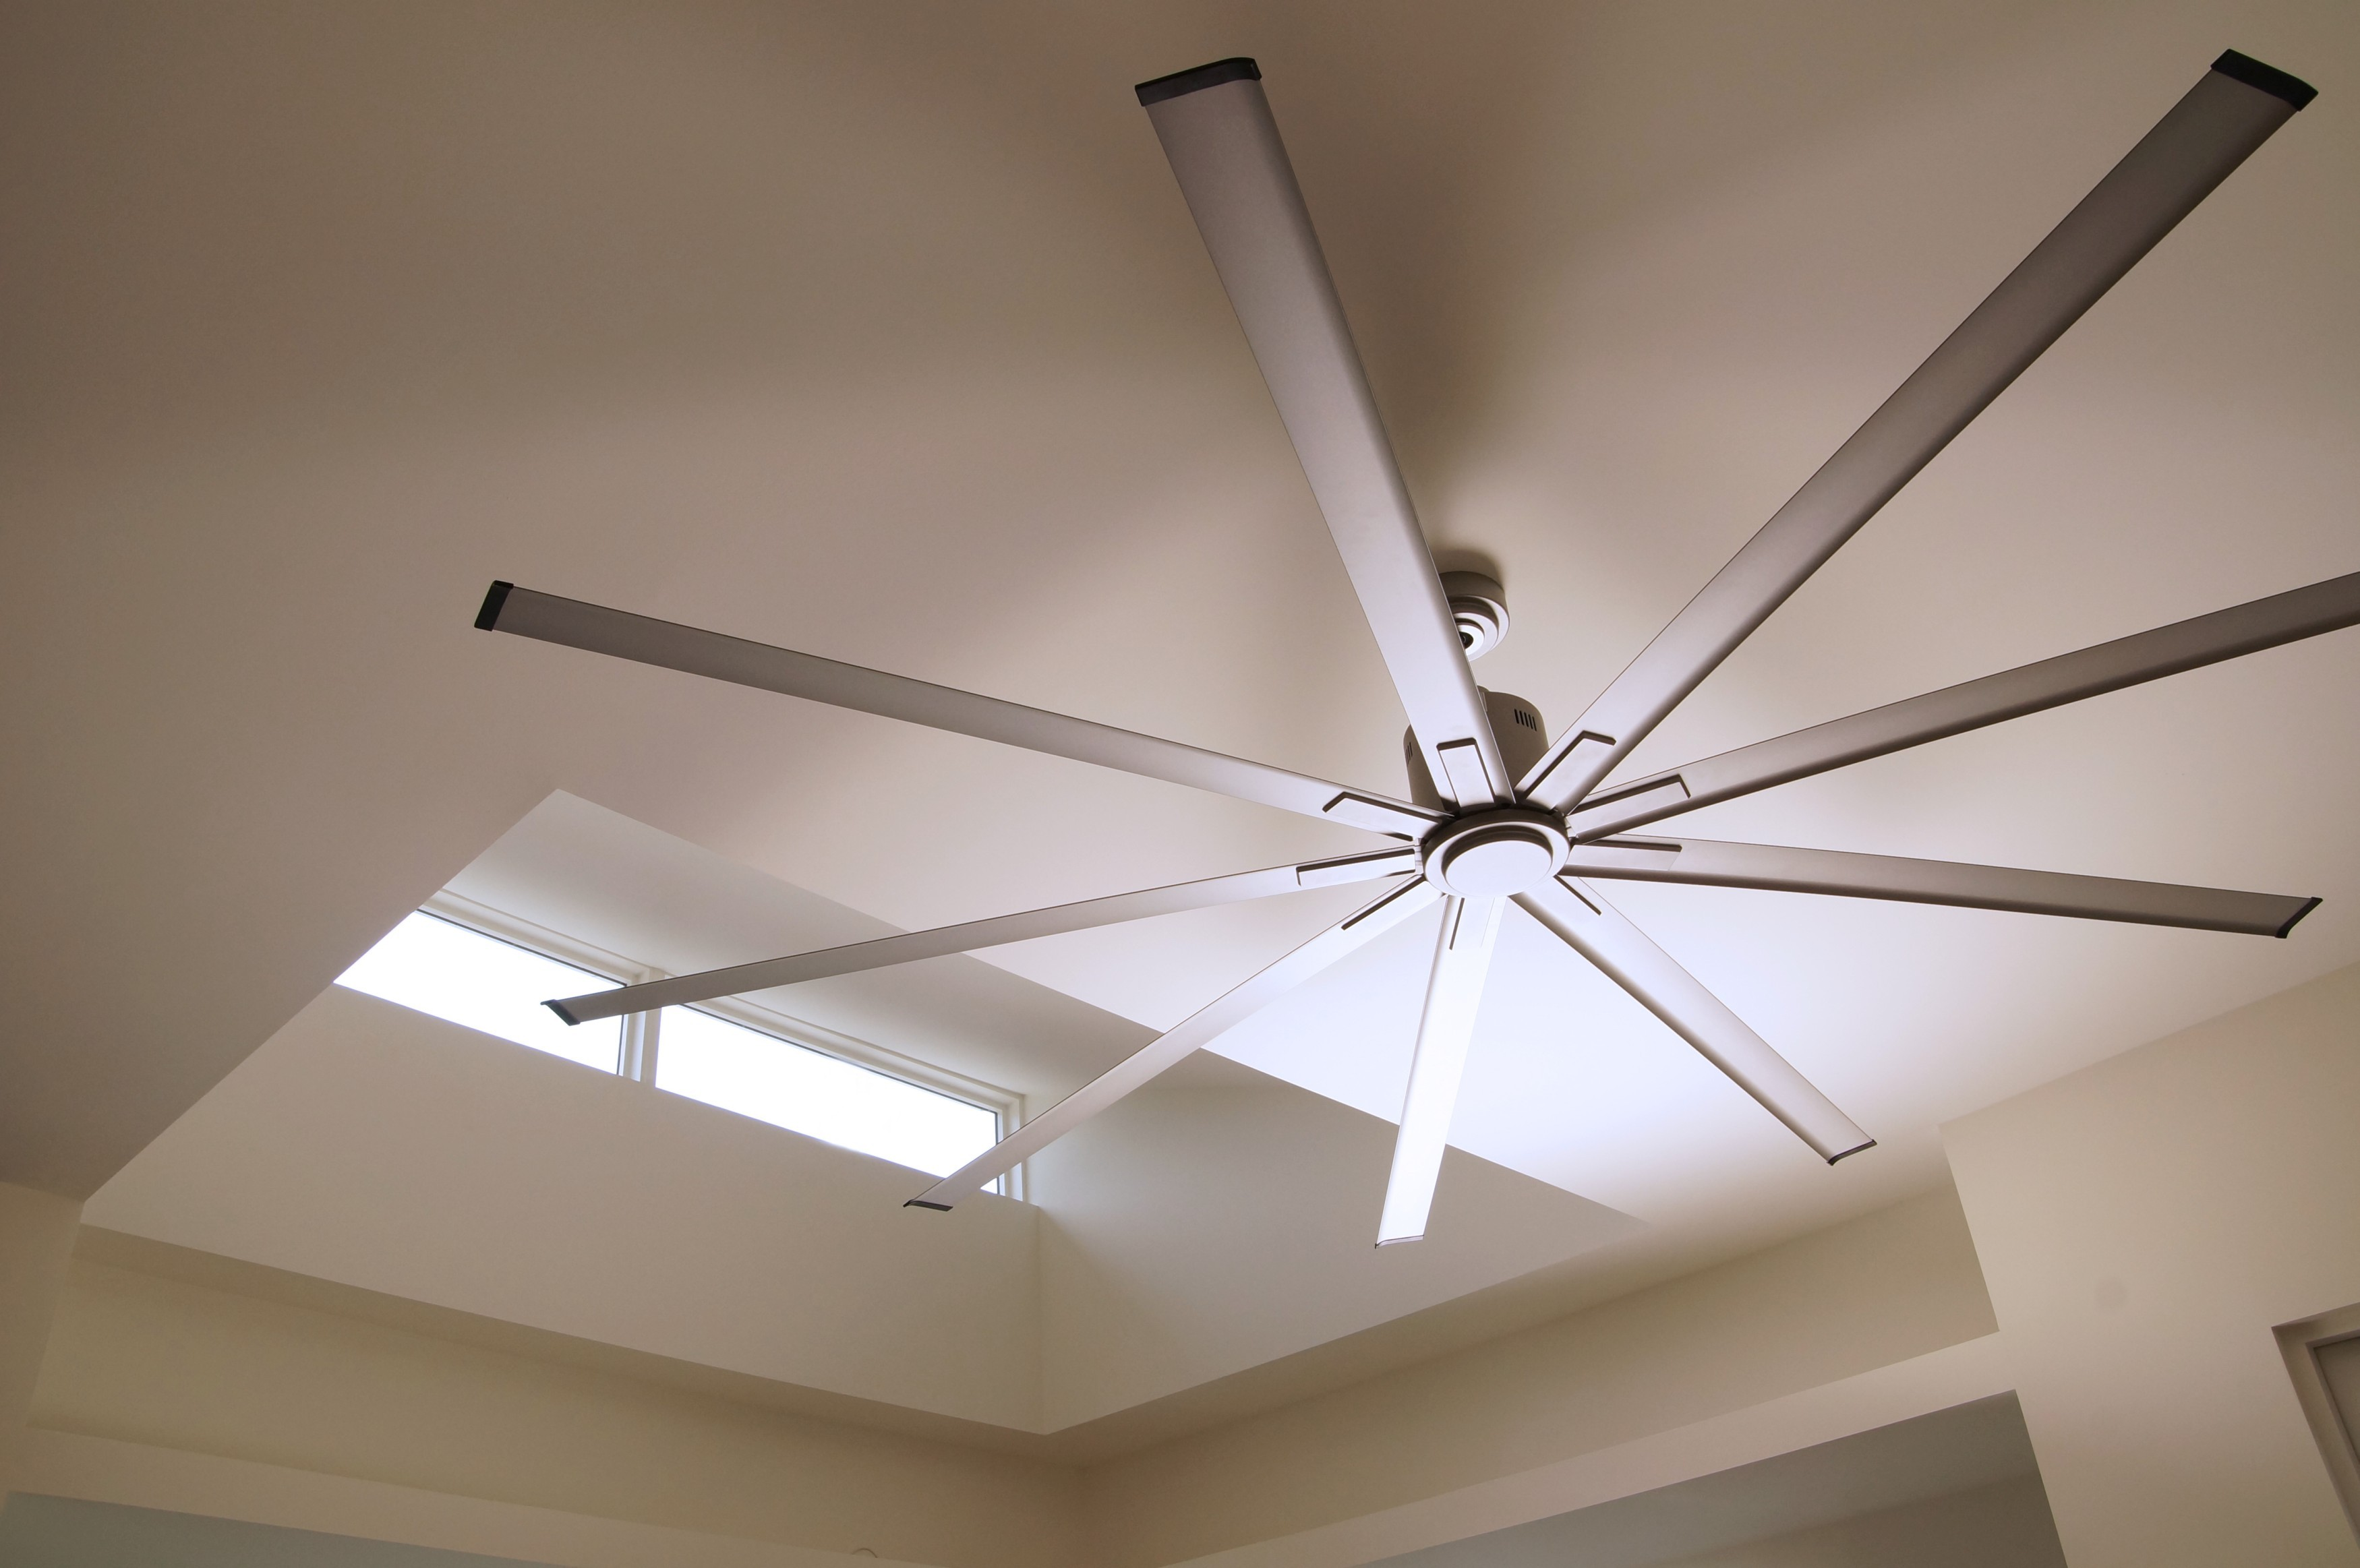 Large Industrial Fans : Big industrial ceiling fans get comfy save money and